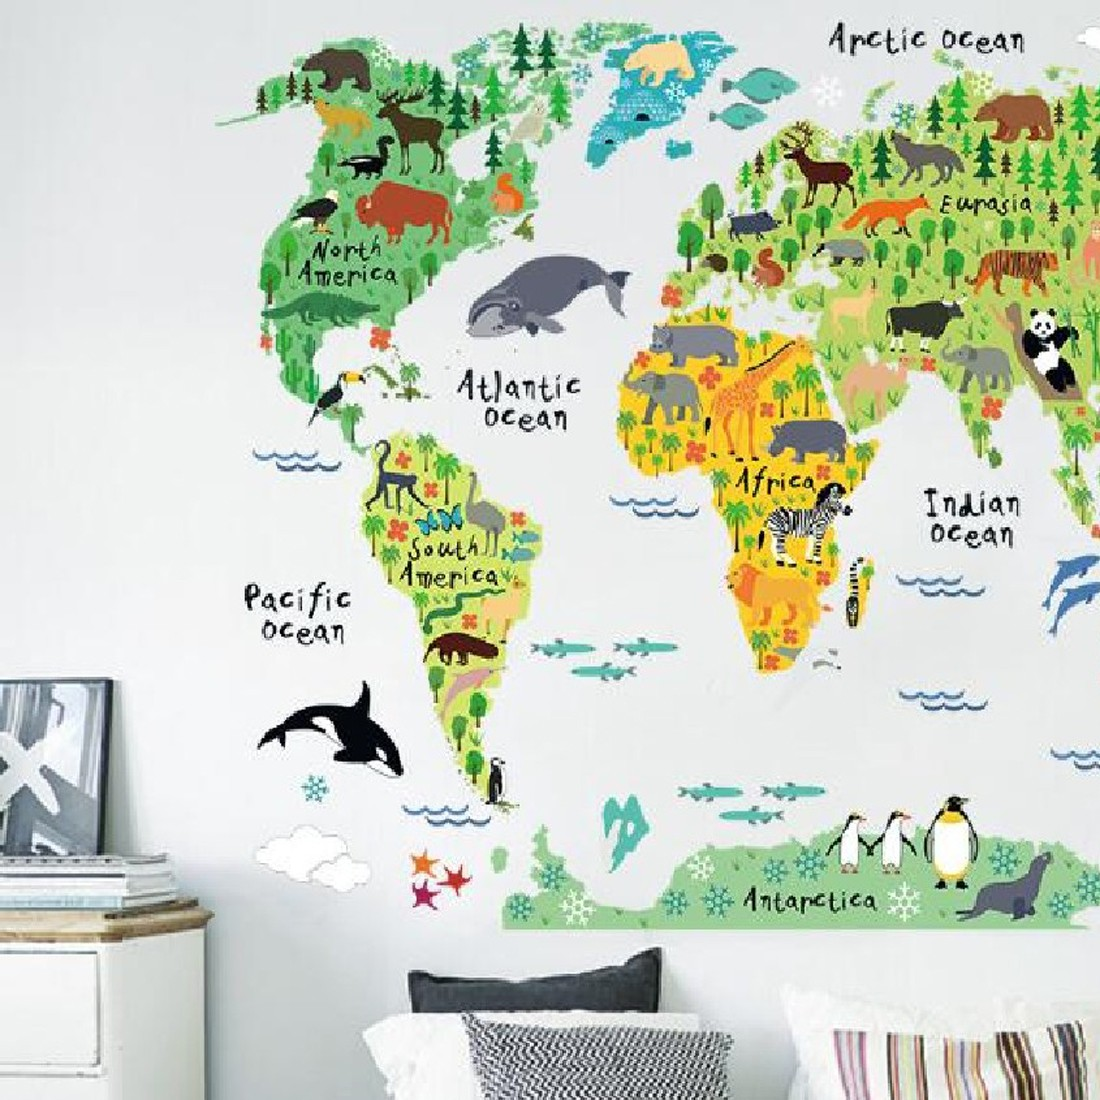 World map sticker for wall india - Colorful Animal World Map Wall Stickers For Kids Rooms Diy Mural Wallpaper Animal World Map Decal